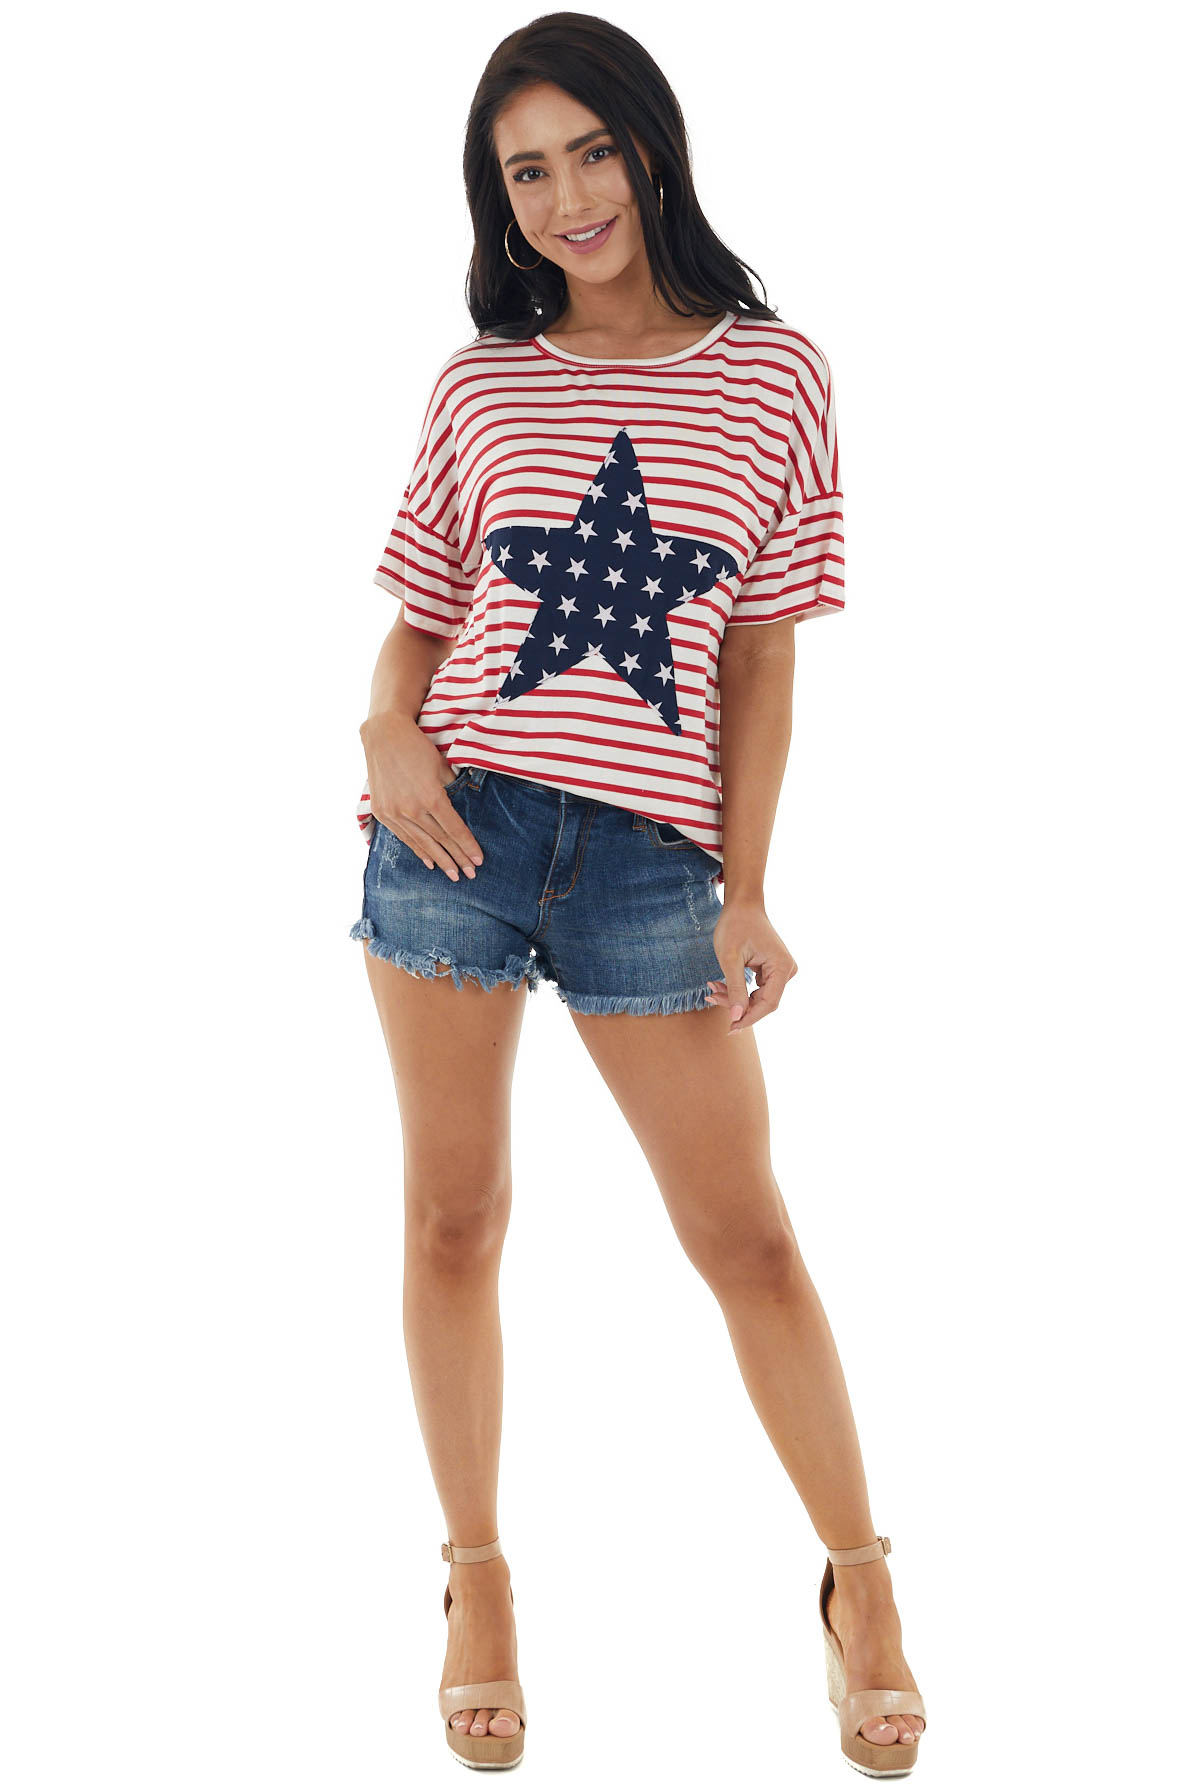 Ivory and Candy Apple Red Stripes Top with Star Print Detail